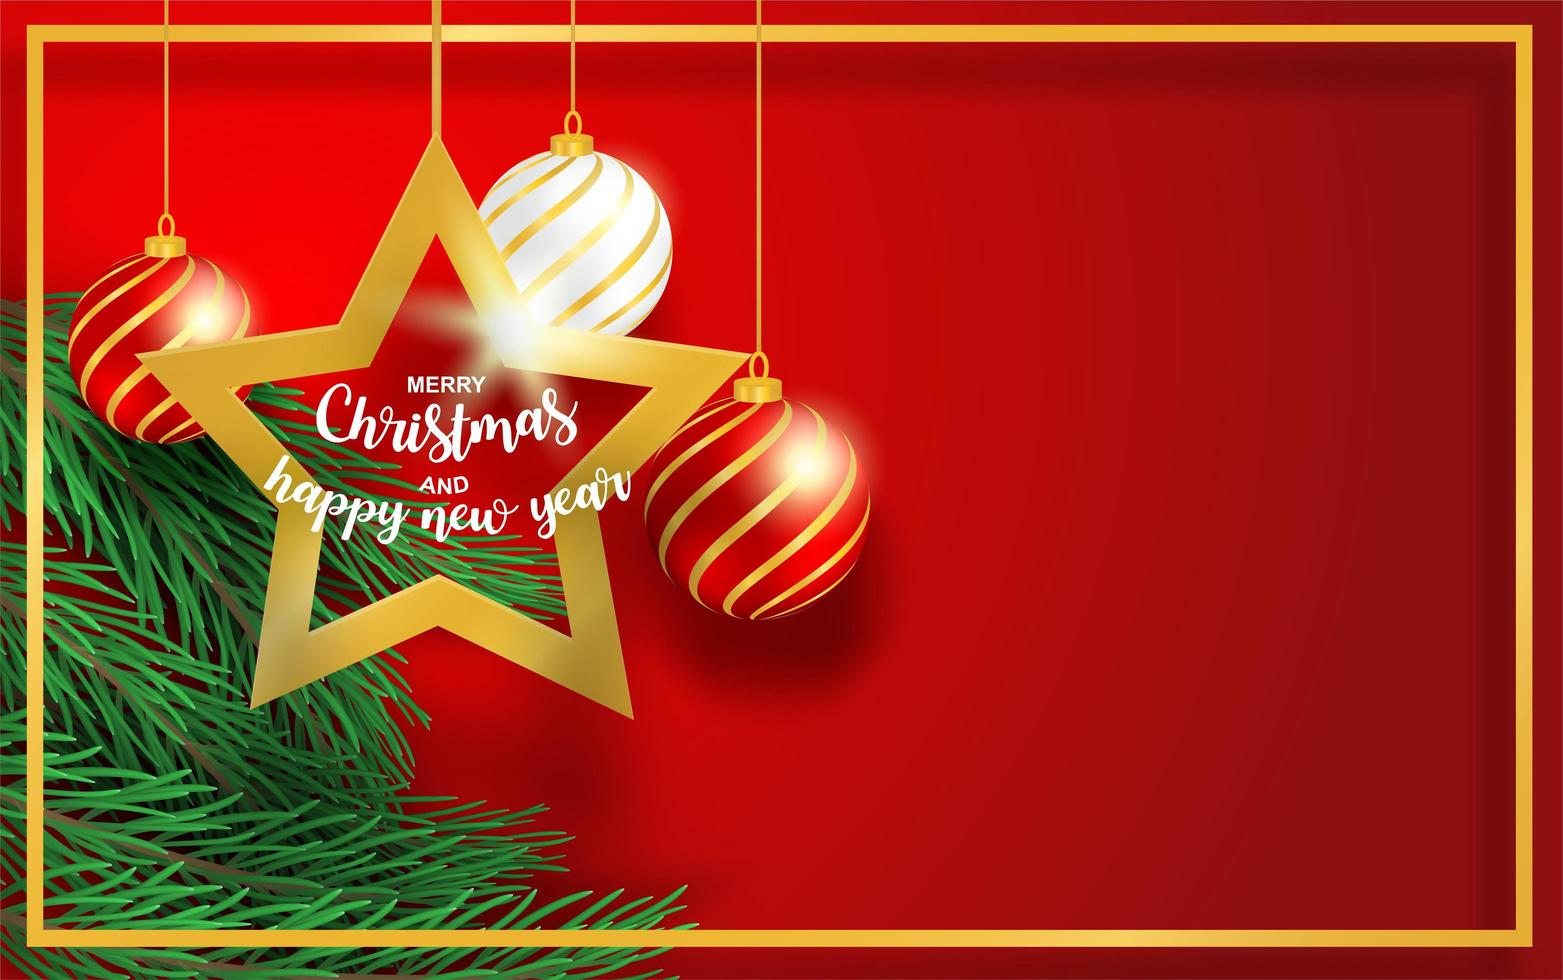 Christmas design with branches, star and ball on red vector